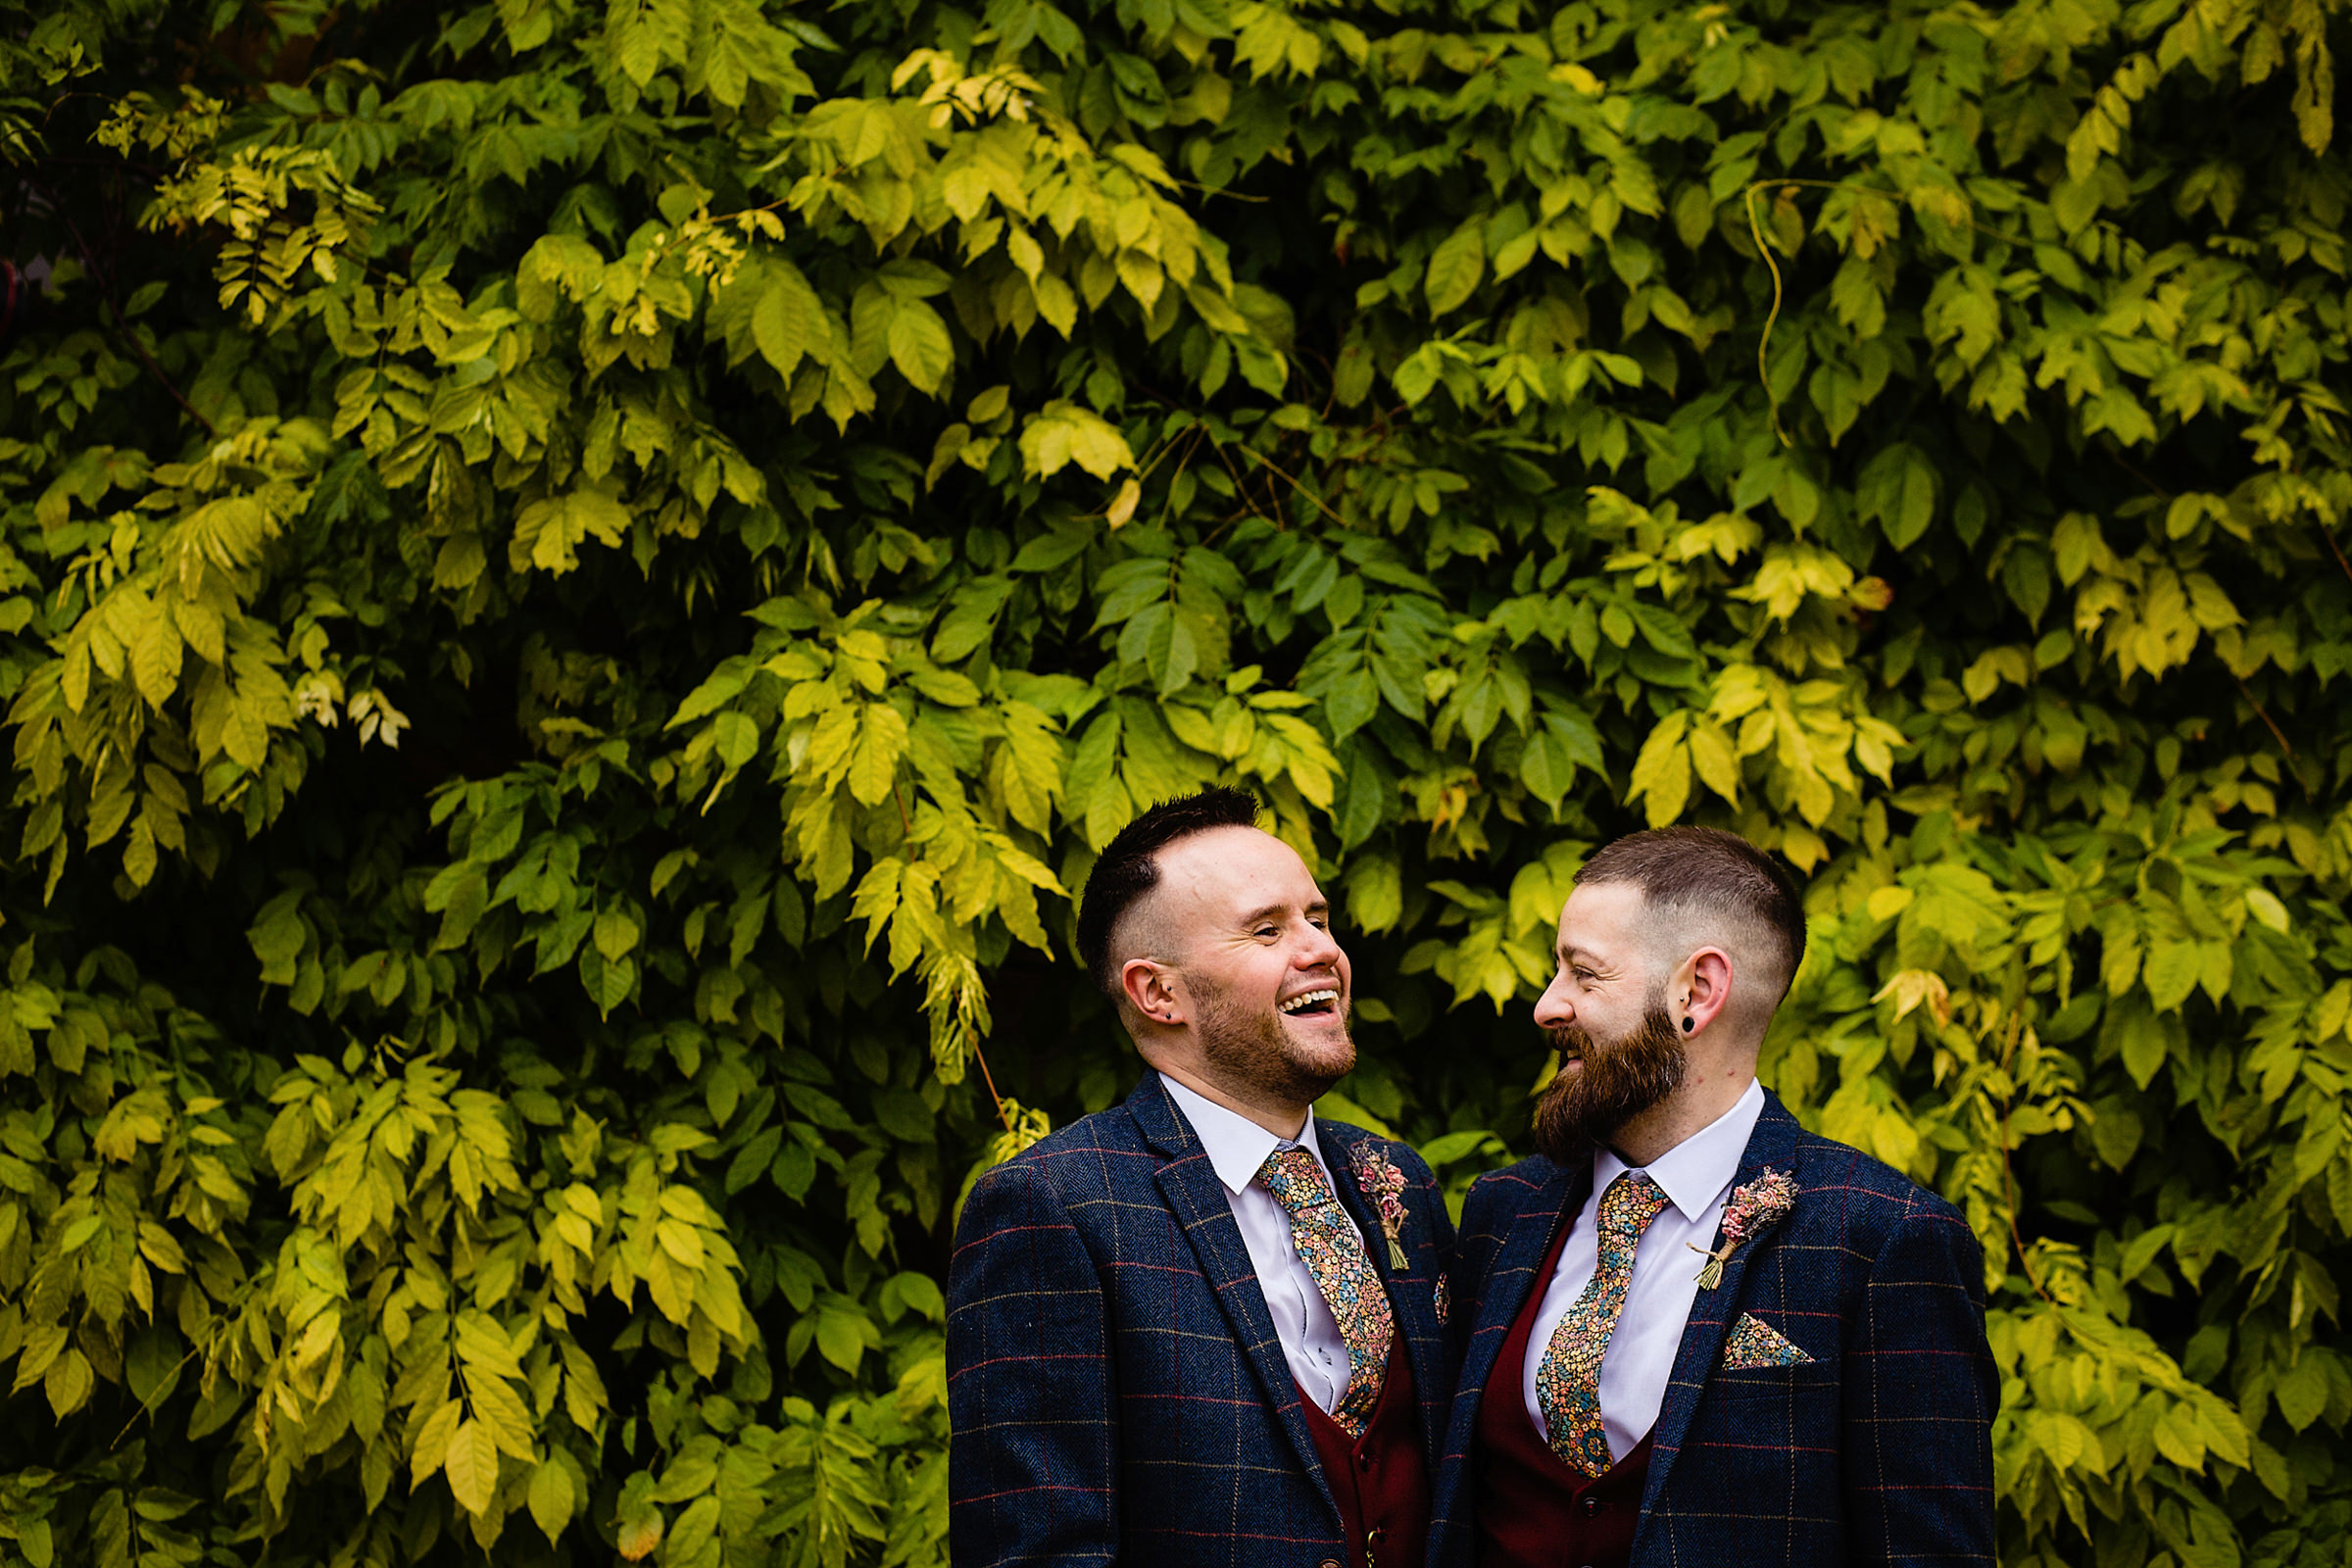 Two happy grooms wearing checked suits and floral ties - photo by Emma + Rich